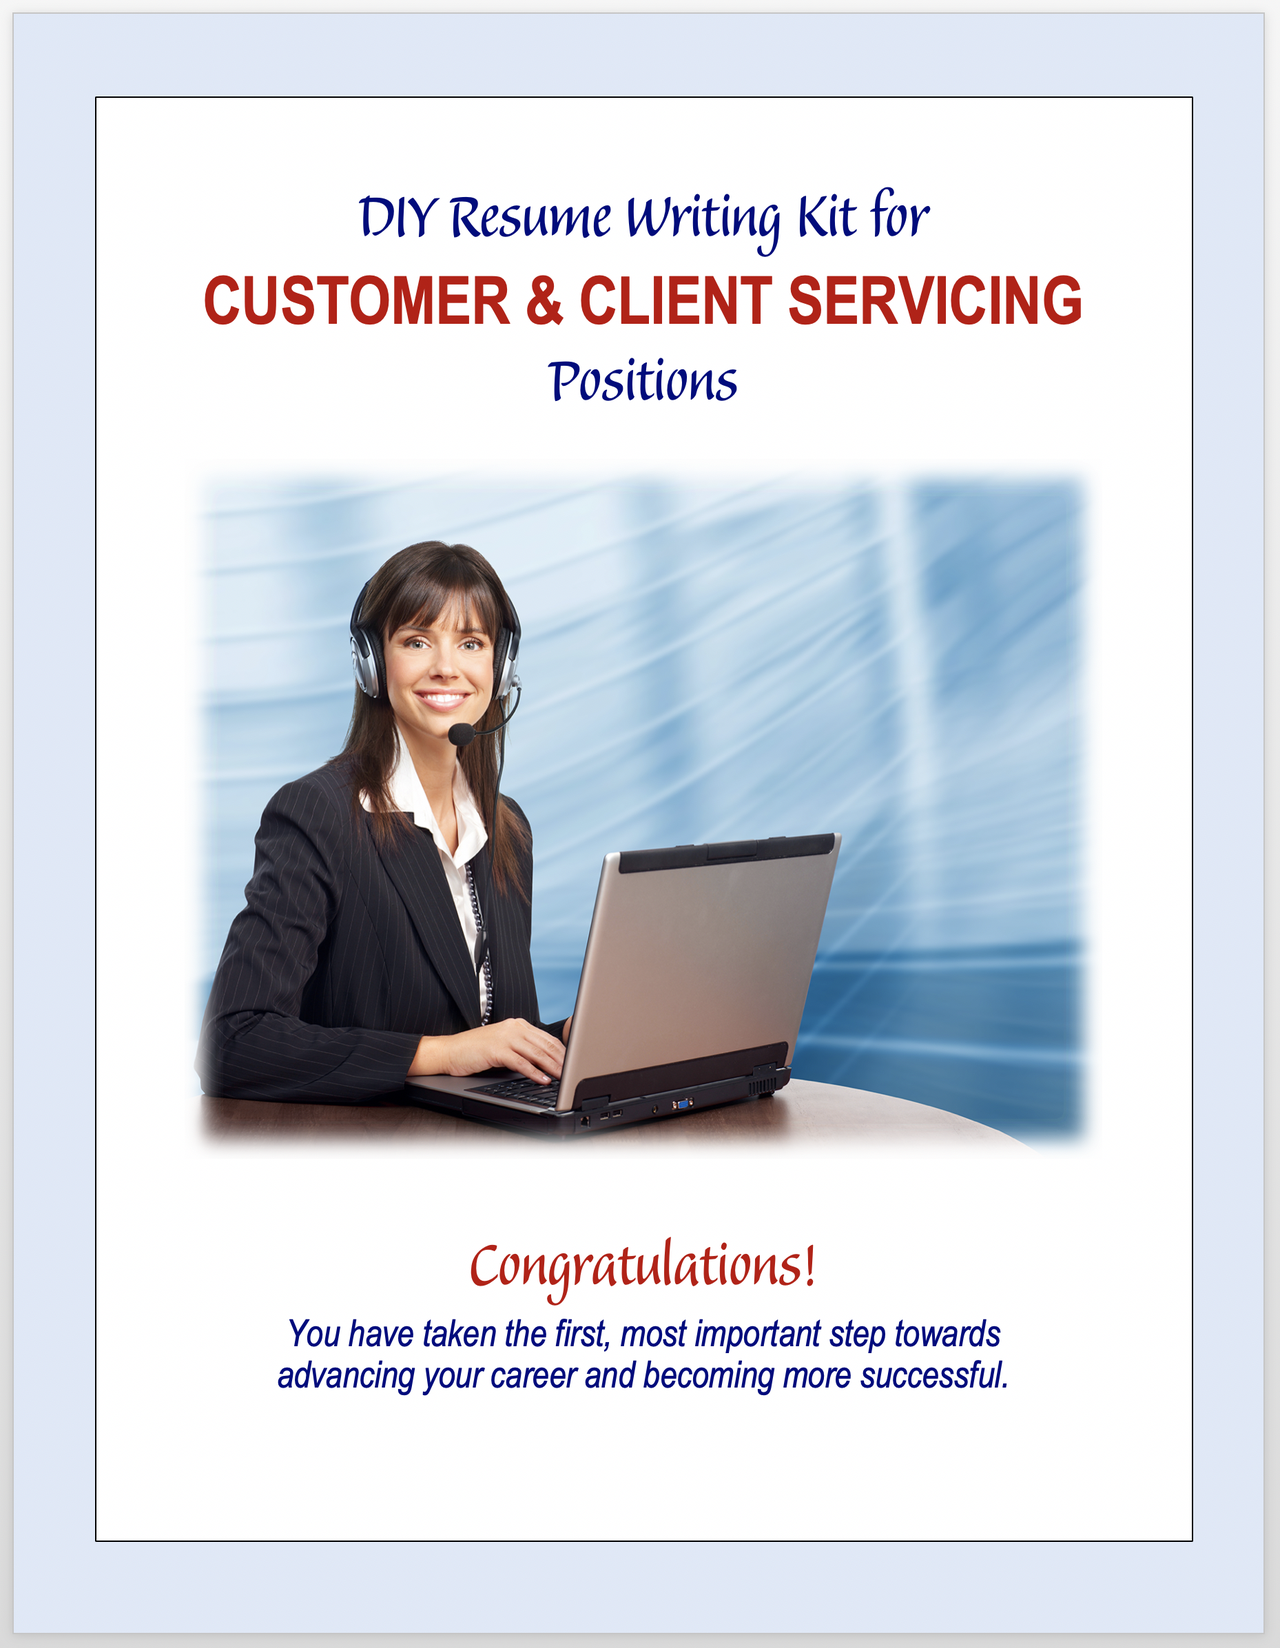 customer & client servicing.png